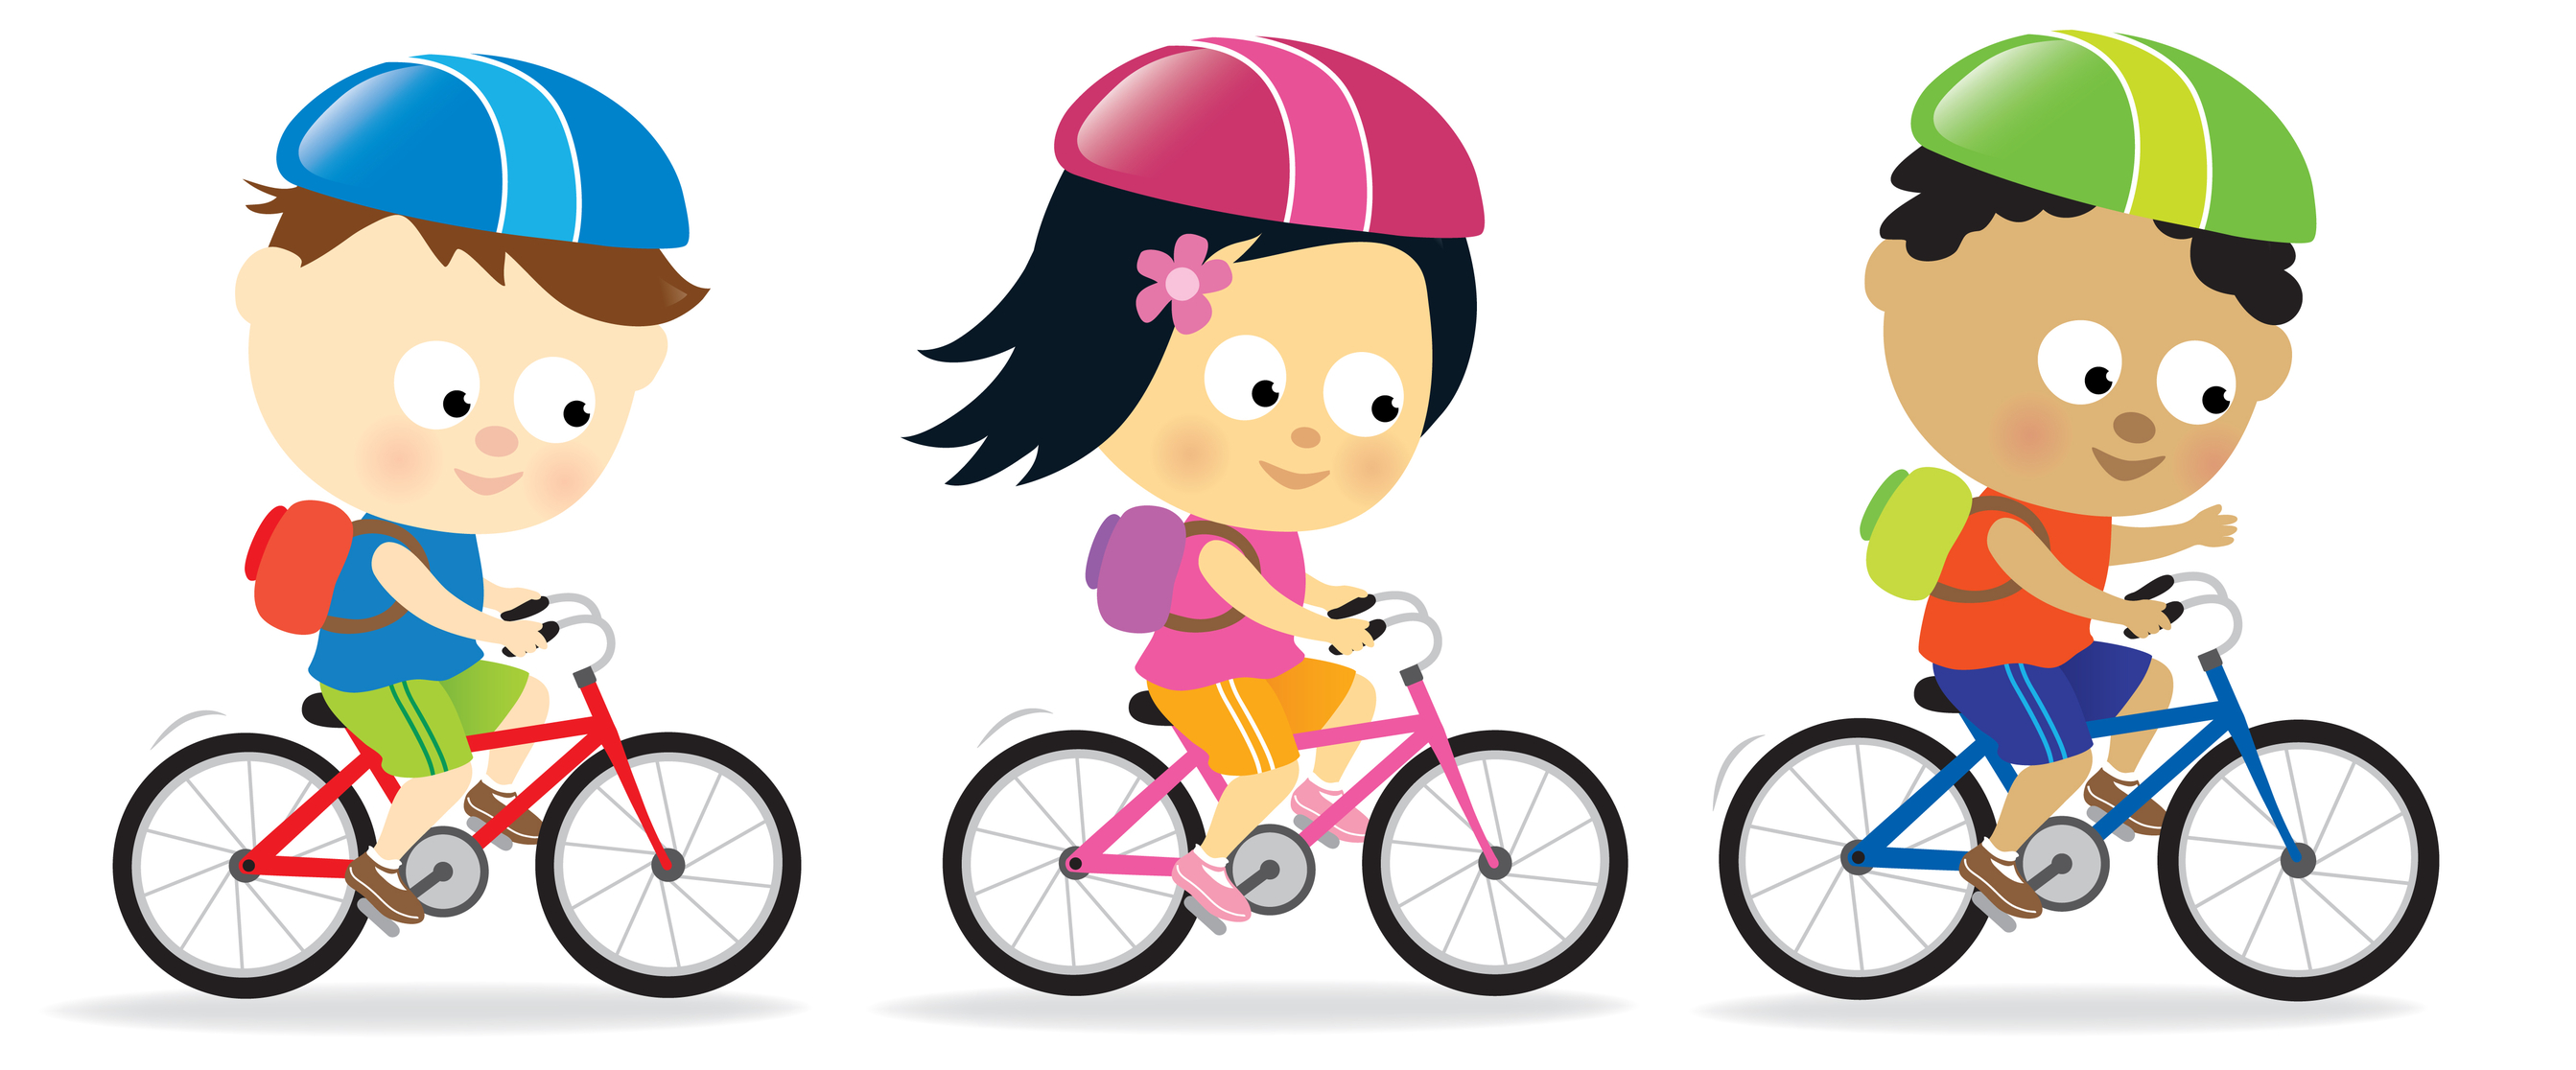 2686x1116 Bicycle Safety Clipart